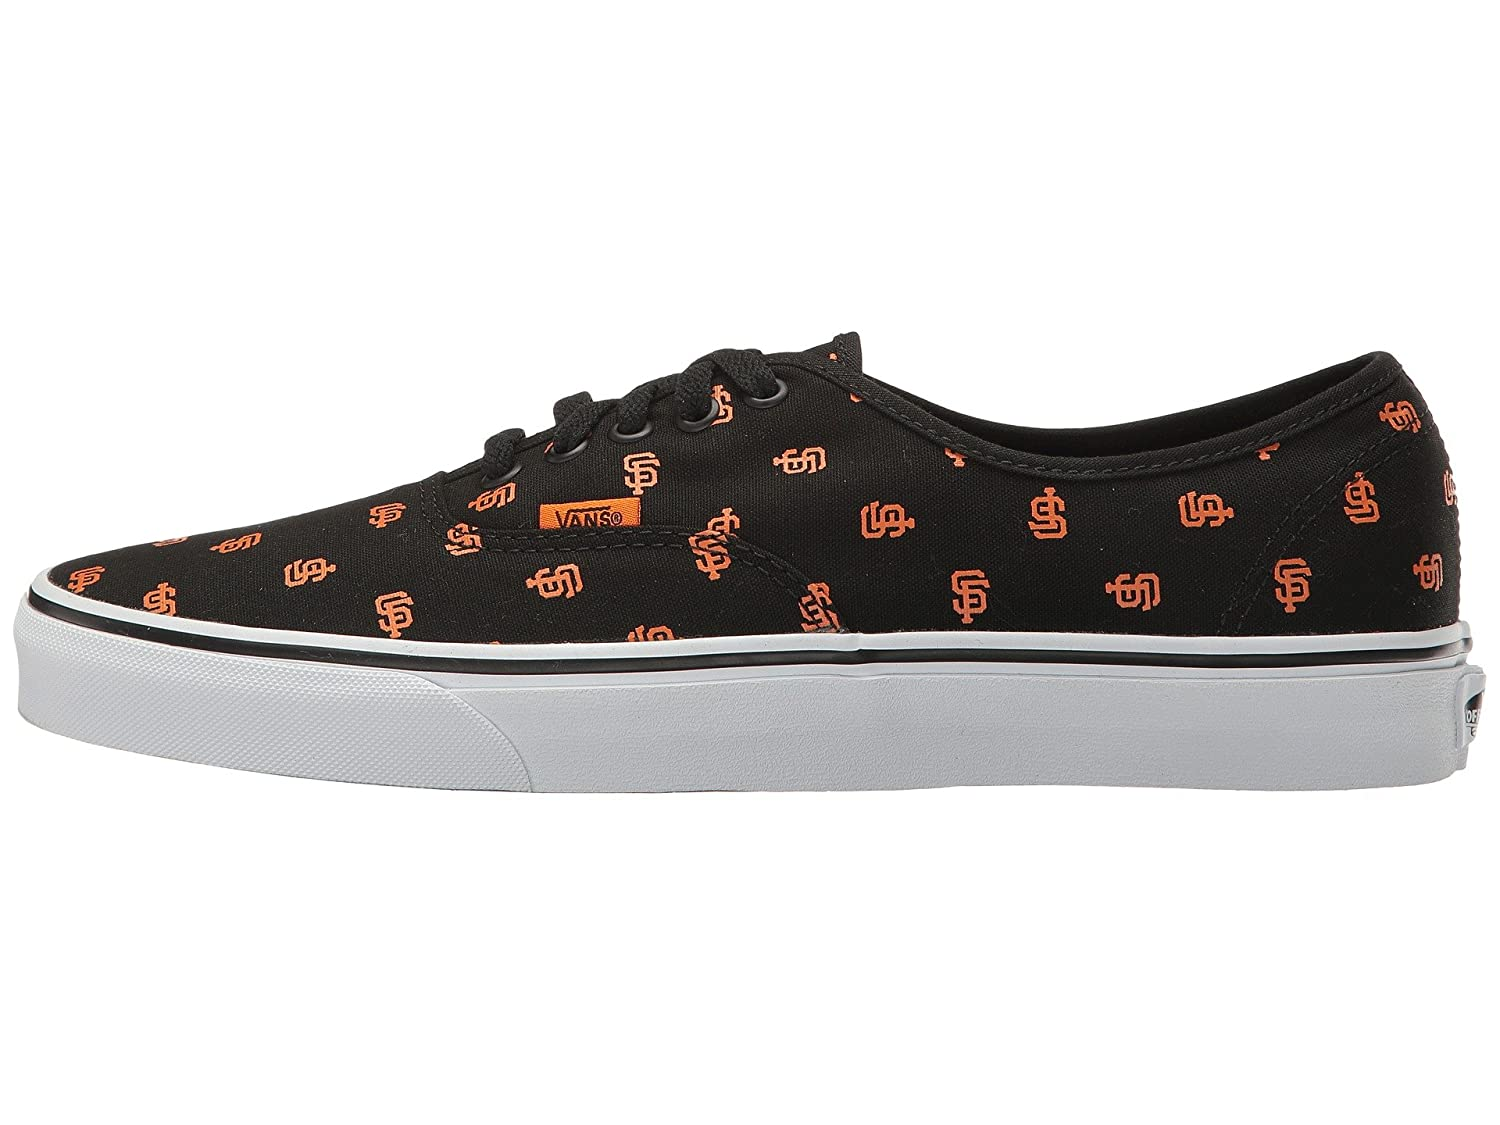 Vans Authentic B01I42T5UG 7 M US Women / 5.5 M US Men|San Francisco Giants/Black